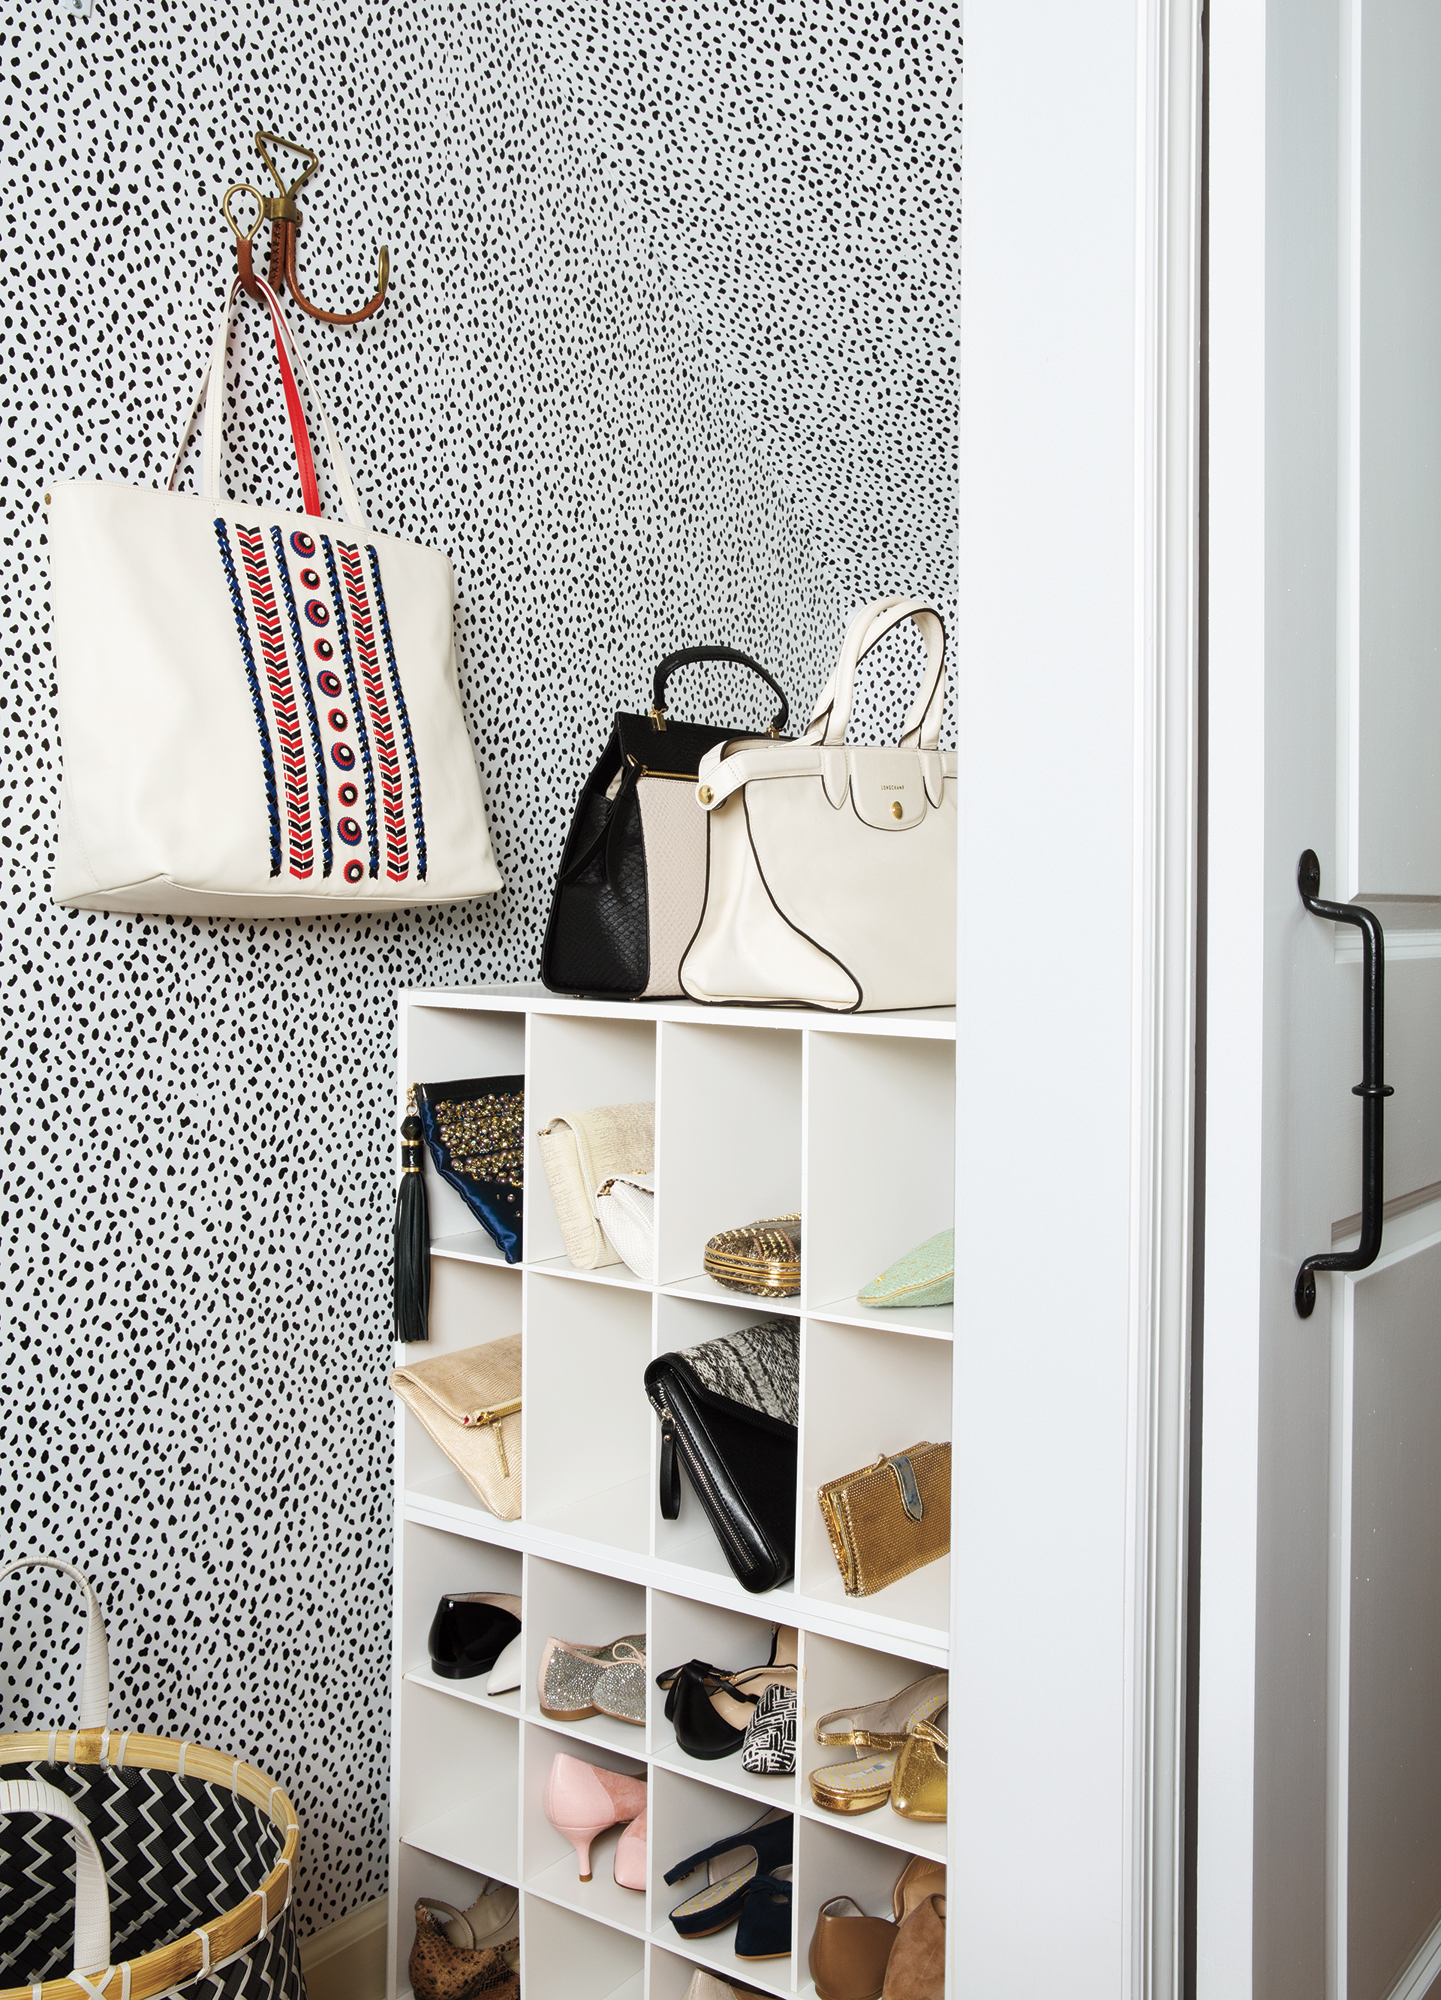 White open shelves with shoes and bags